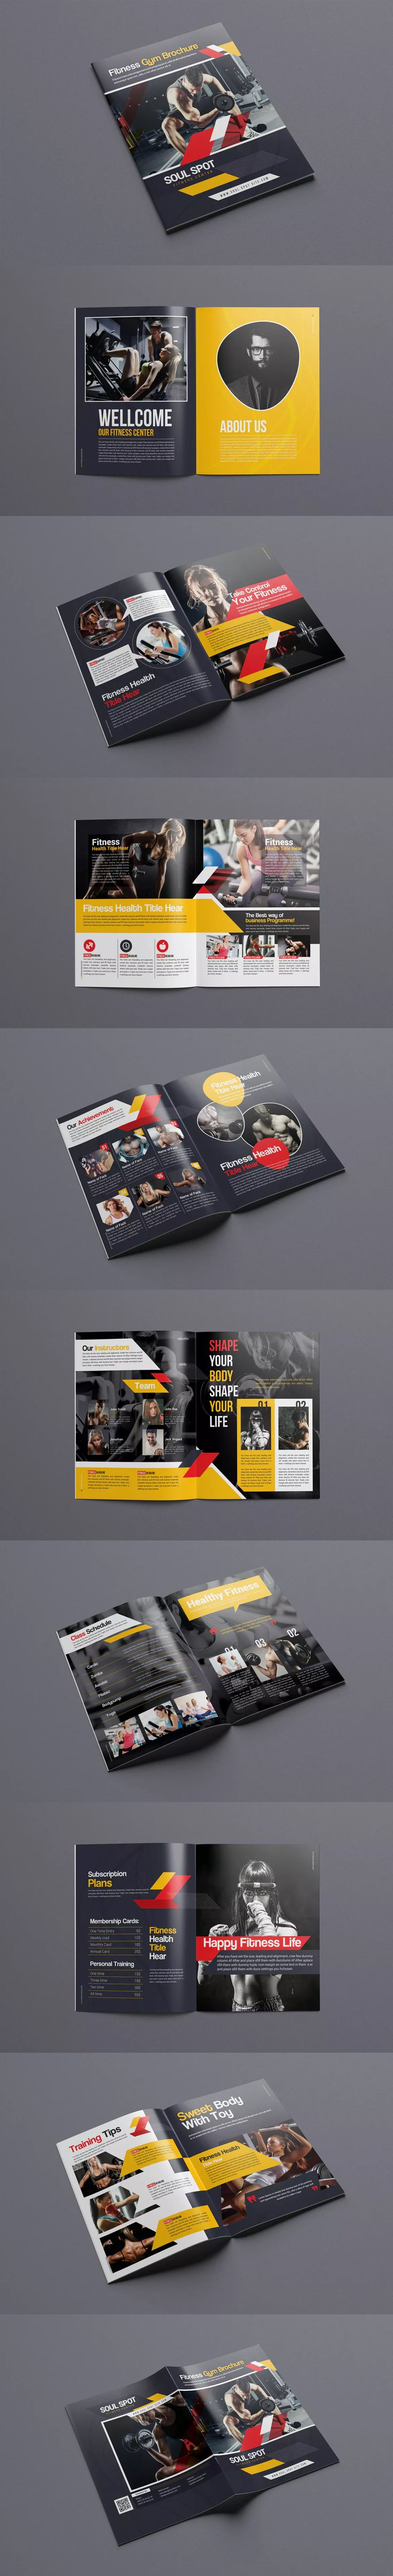 Fitness - Gym Bifold Brochure Template InDesign INDD - US Letter Size